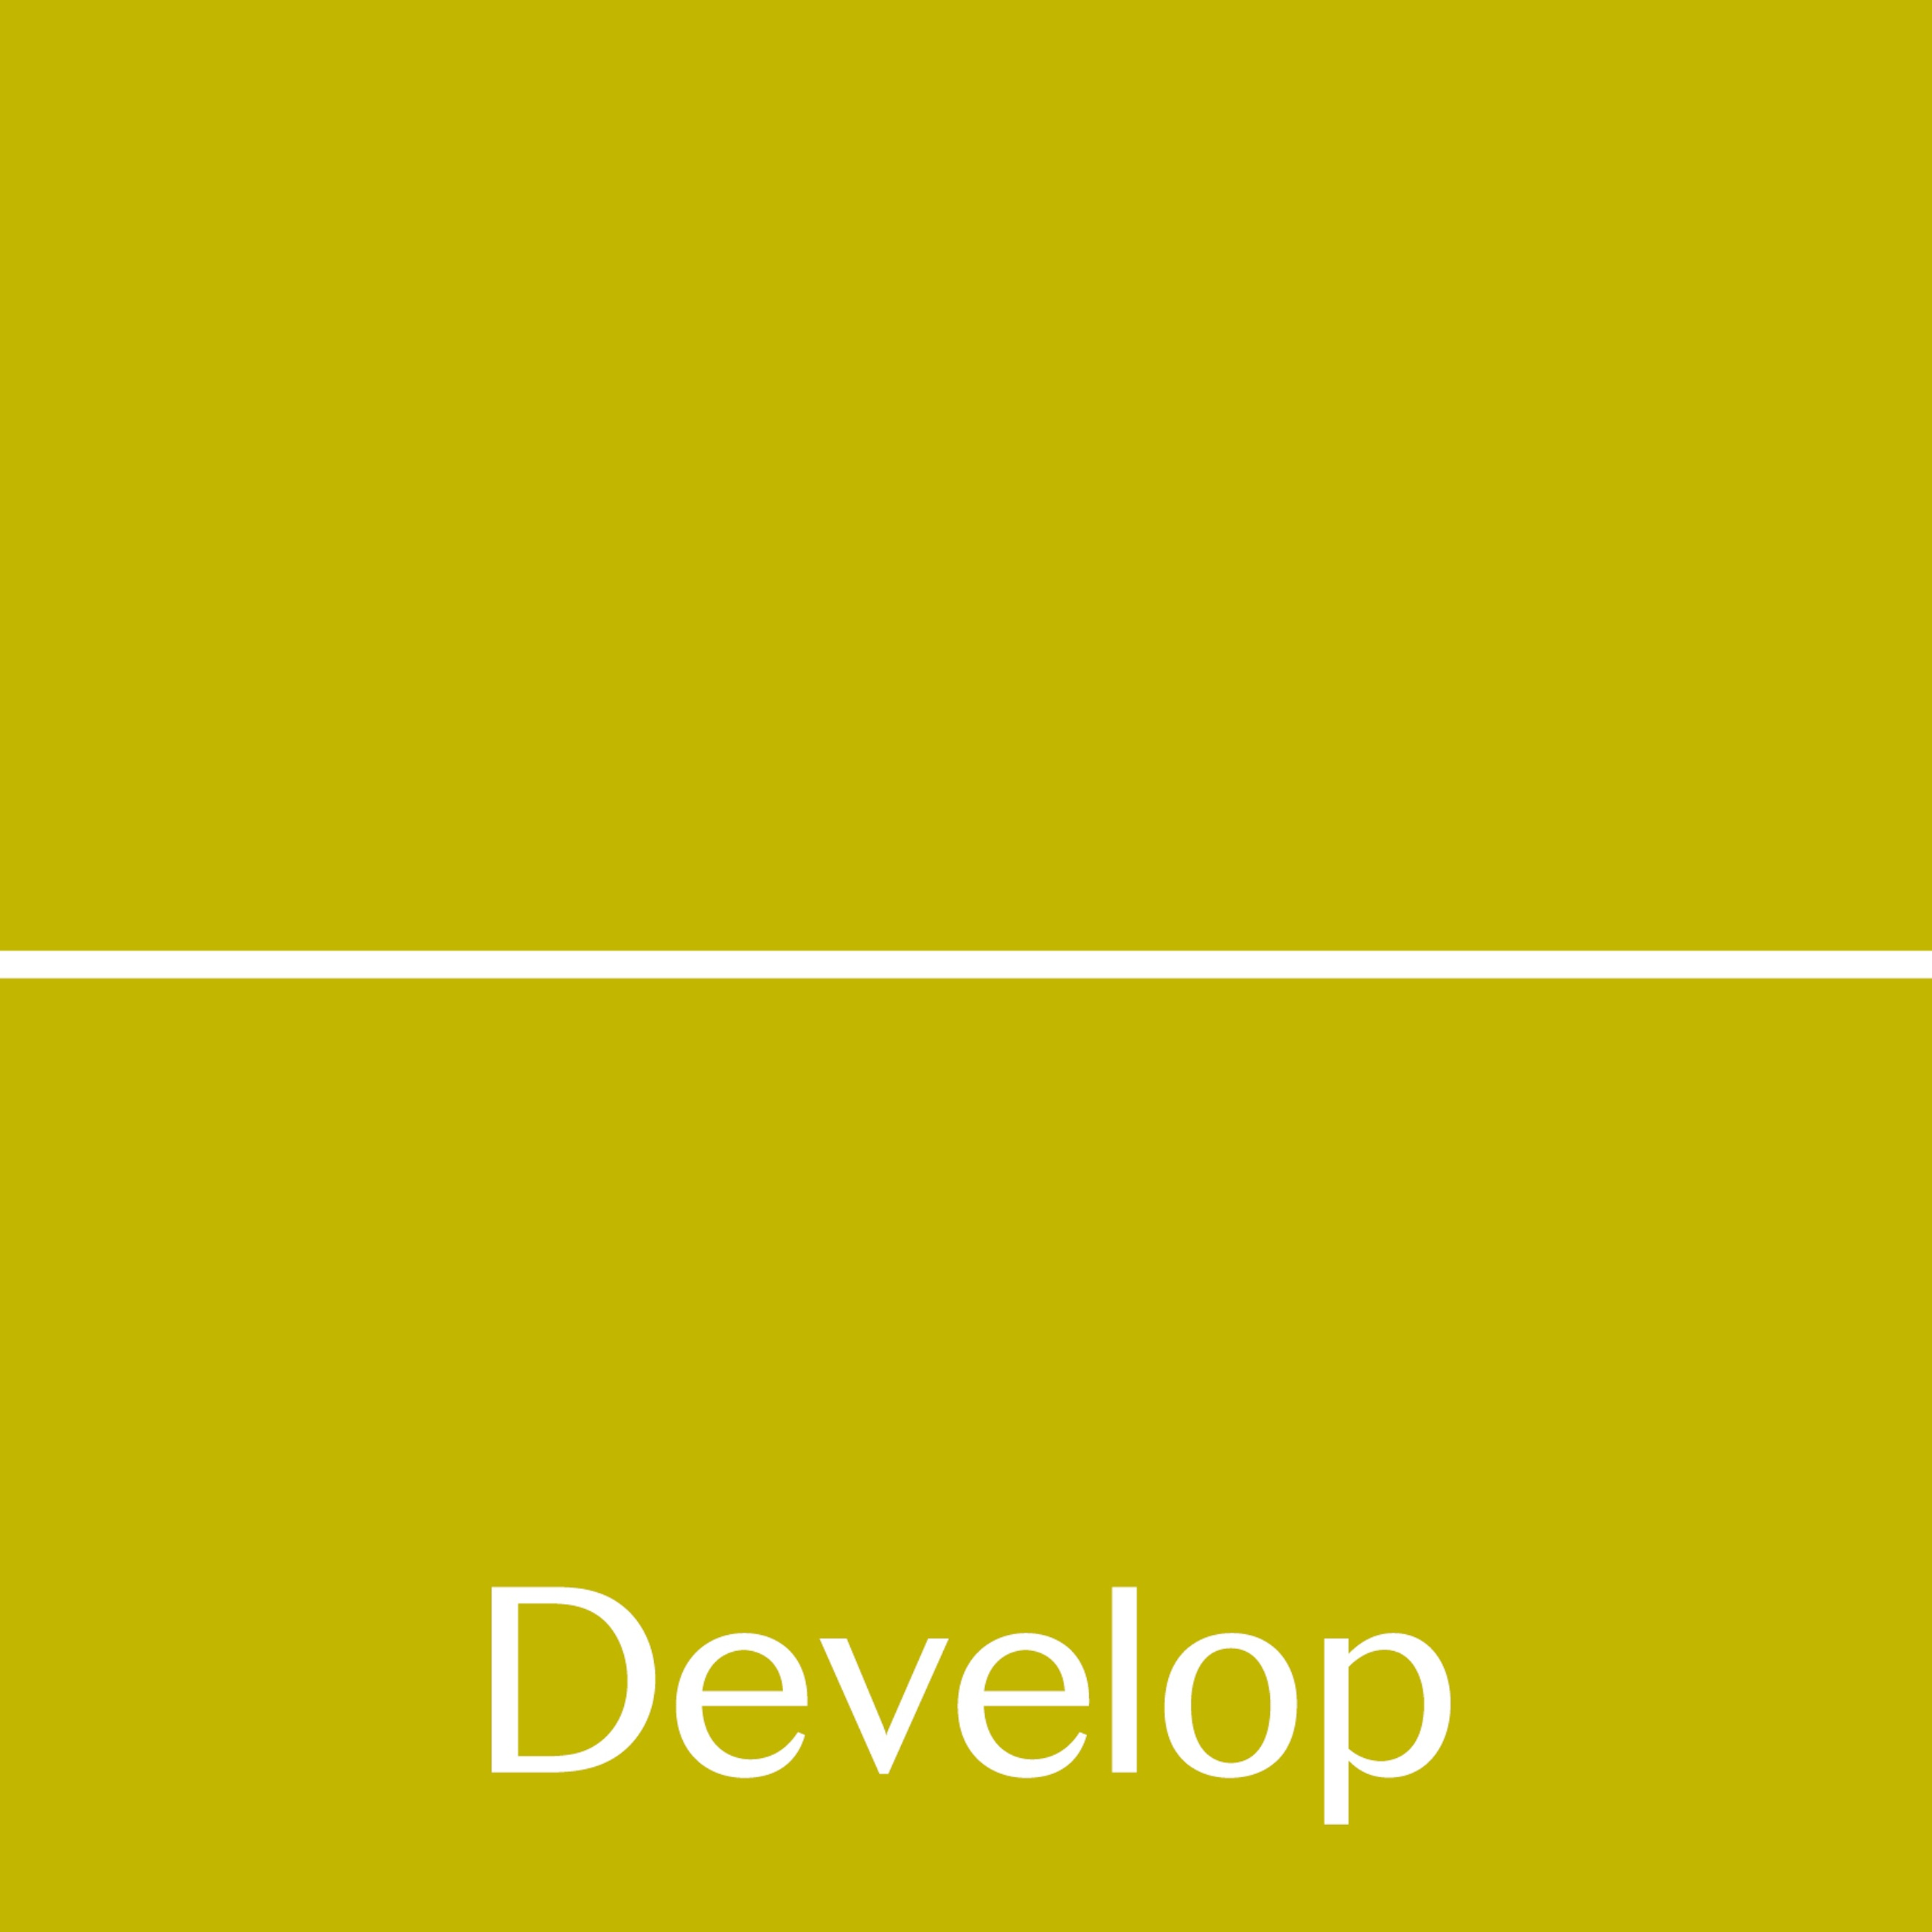 Develop logo